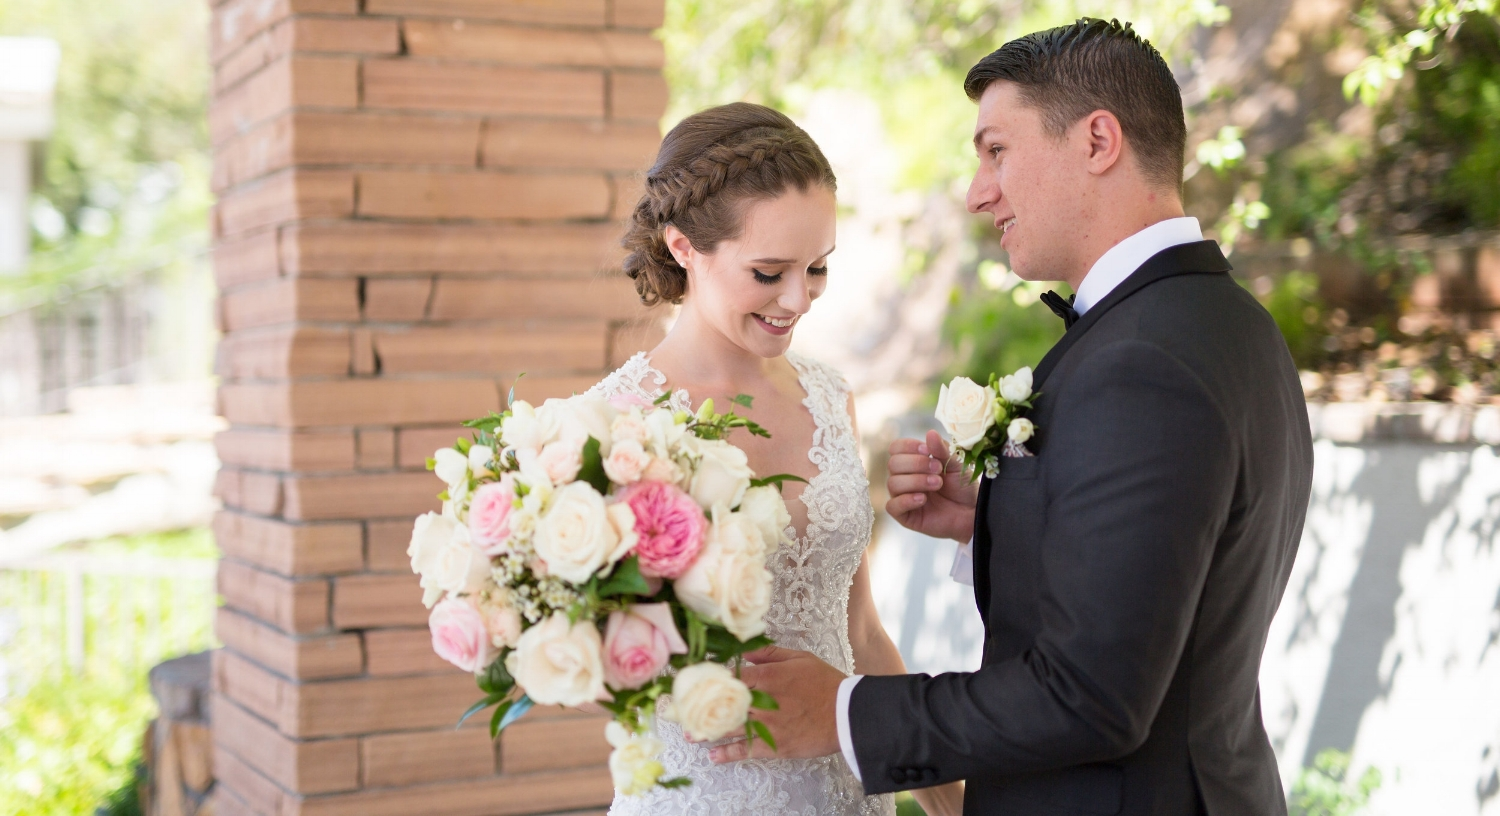 Young Brunette Bride with Natural Makeup, braided updo and bouqueton Wedding Day. Bridal Hair and Beauty by Vanity Belle in Orange County (Costa Mesa) and San Diego (La Jolla)